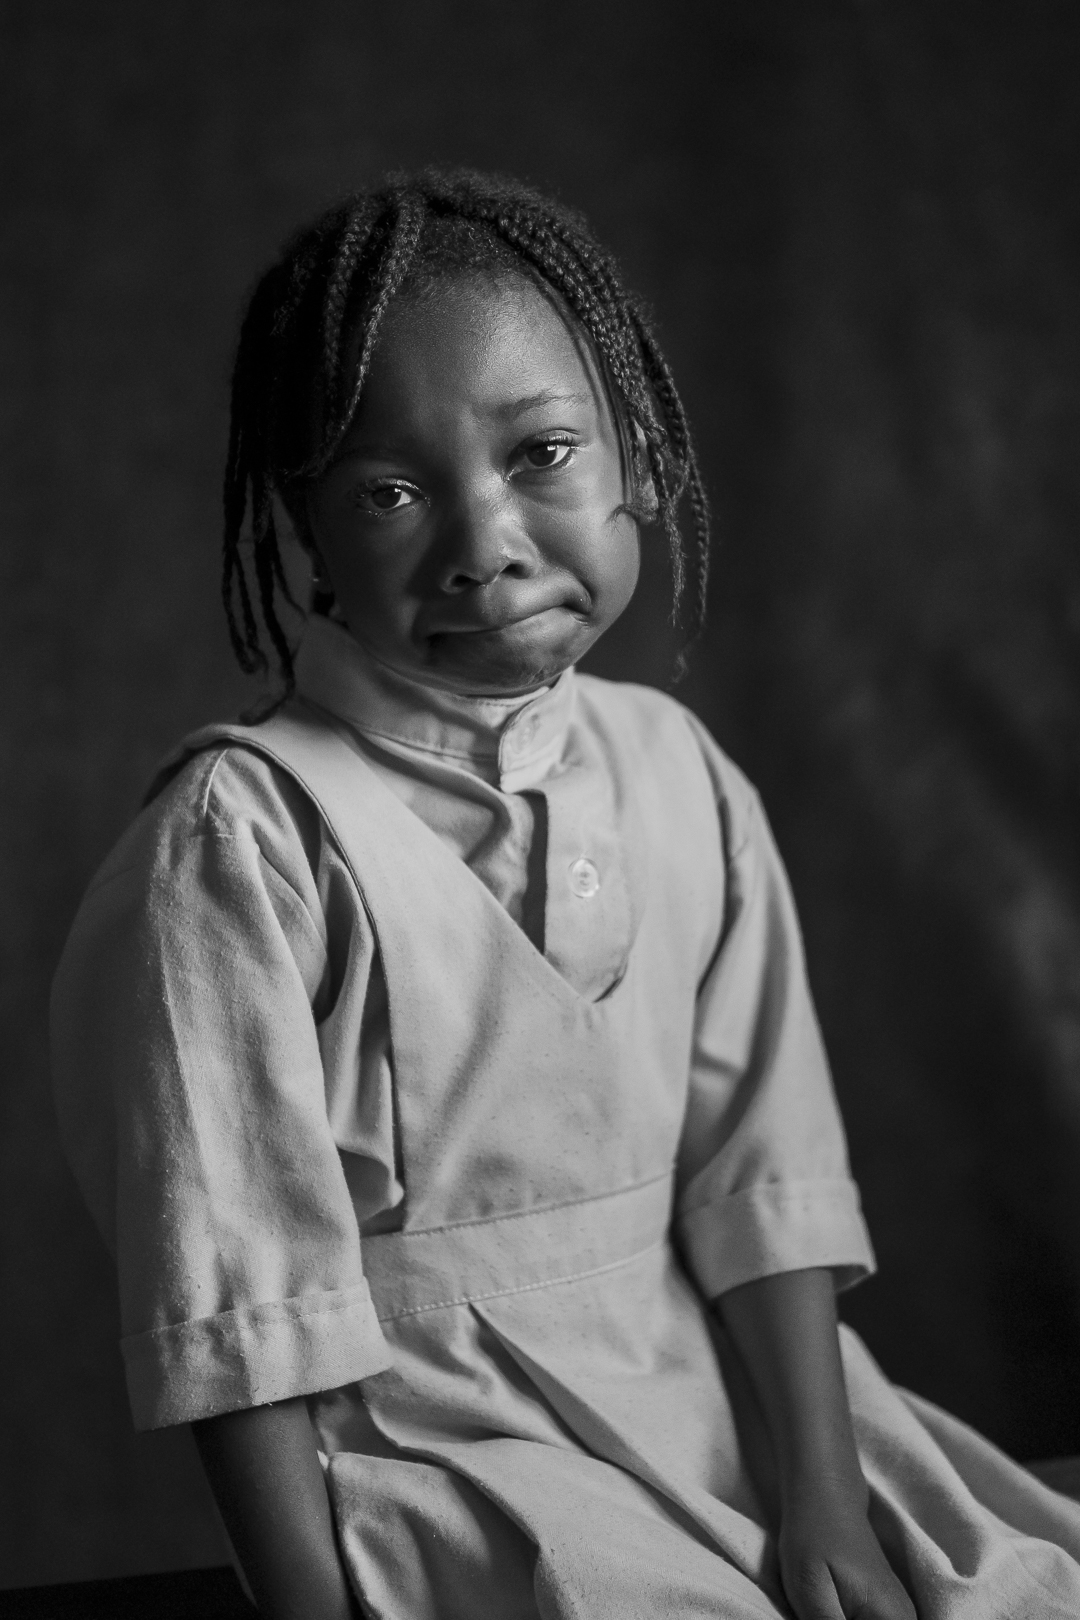 Chanelle | 4 years old